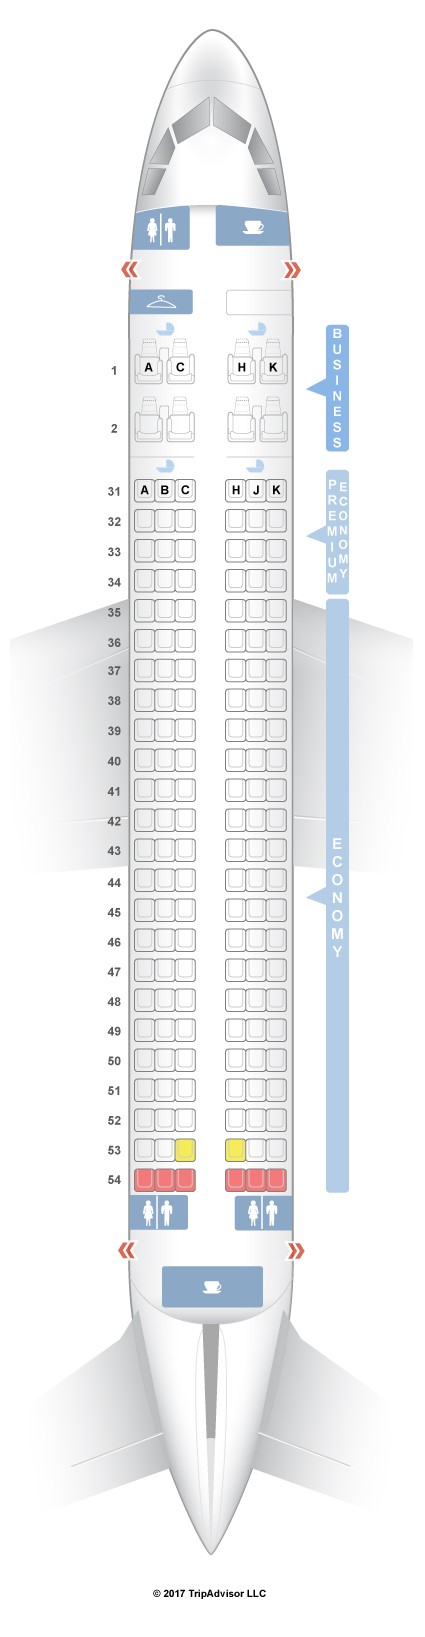 Airbus A330 200 Seating Plan China Southern | Elcho Table on boeing 777 seat map, virgin a340 seat map, a 320 seat map, airbus a319 seat map, airbus a380-800 seat map, airbus a330-200 seat map, delta airbus 333 seat map, virgin boeing 747-400 seat map, delta md-90 seat map, a320 jet seat map,